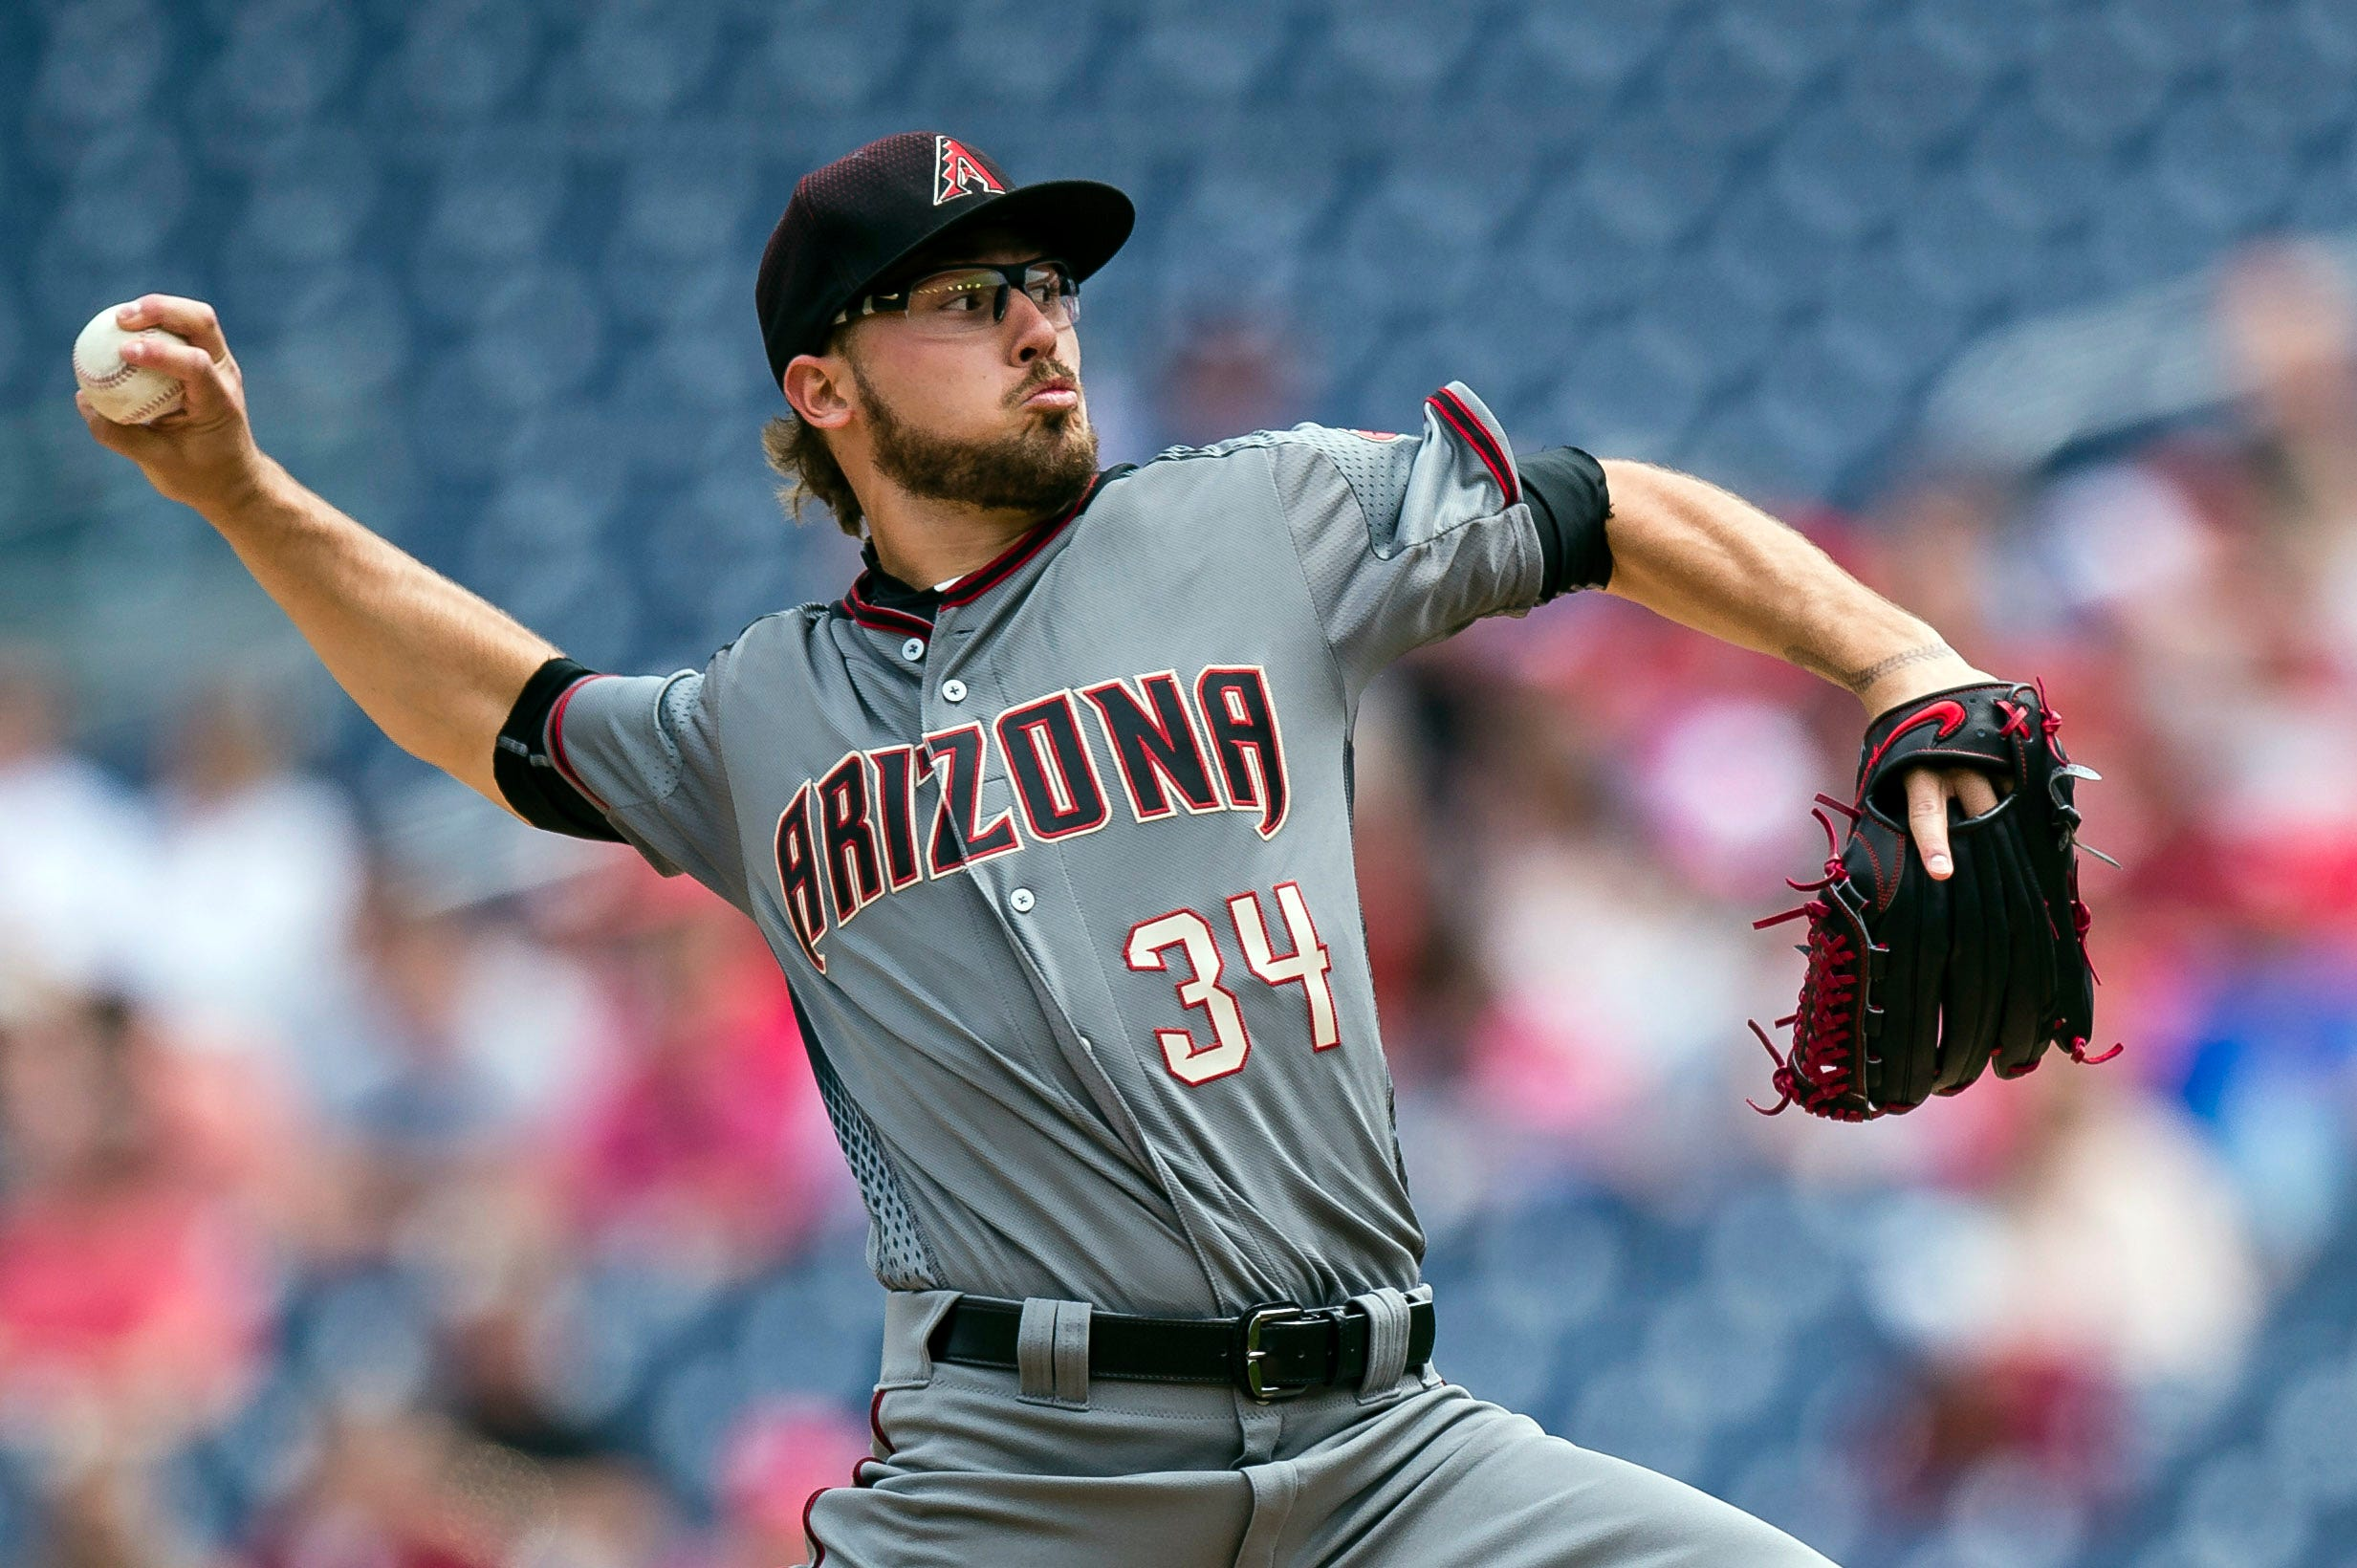 Game day: Braden Shipley set for Sunday start